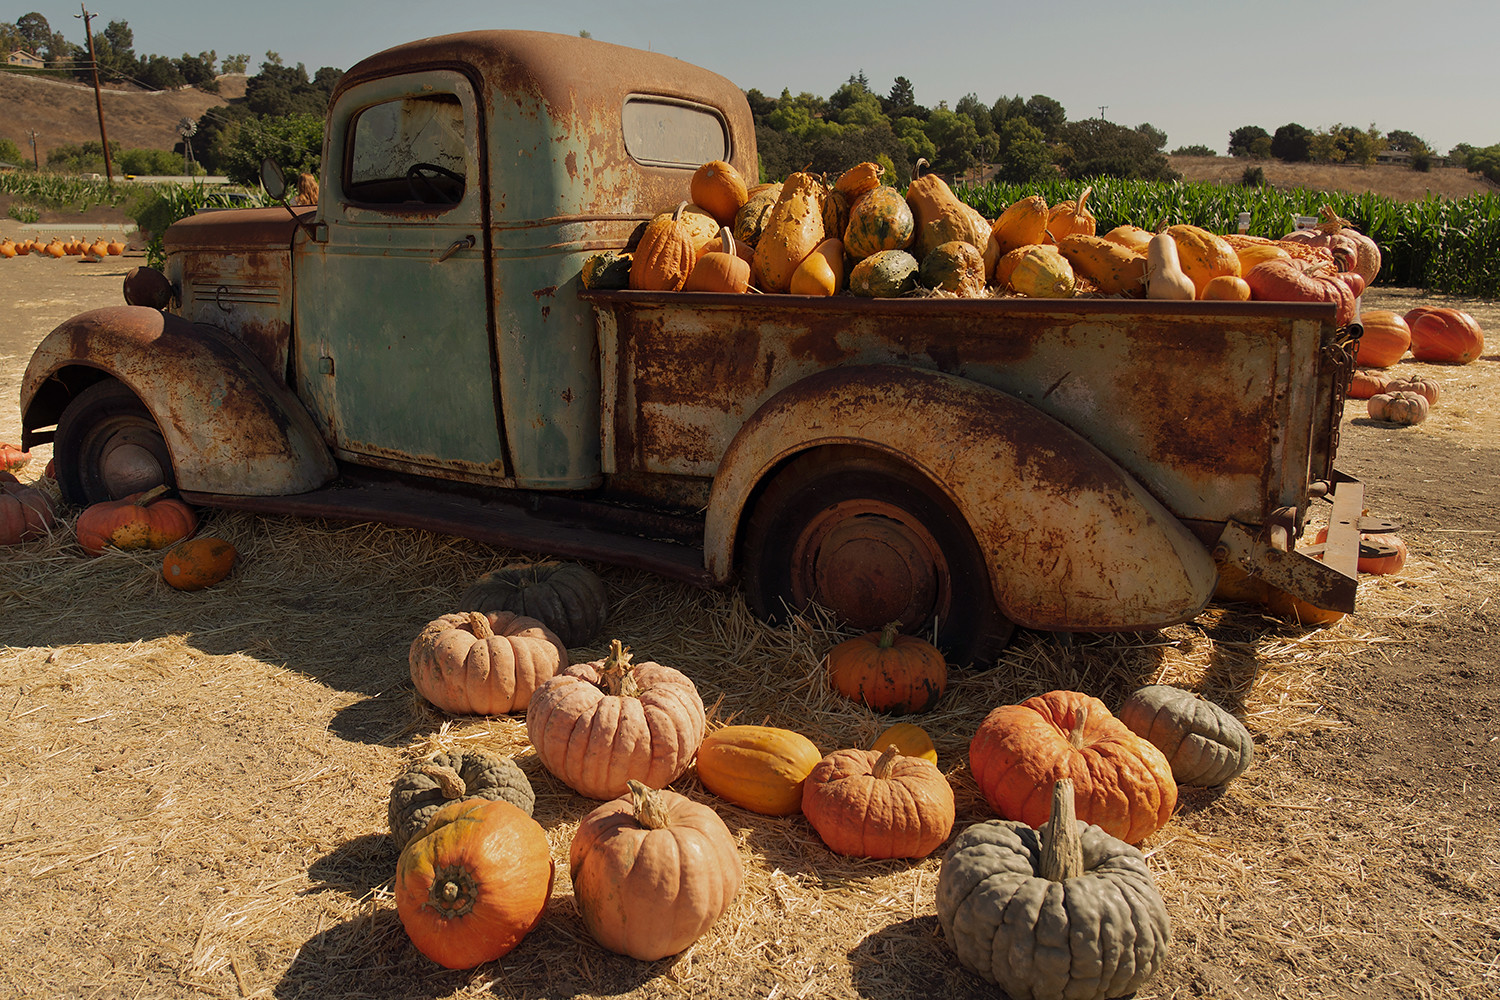 23solvang-pumpkinpatch-california-roadtrip-travel